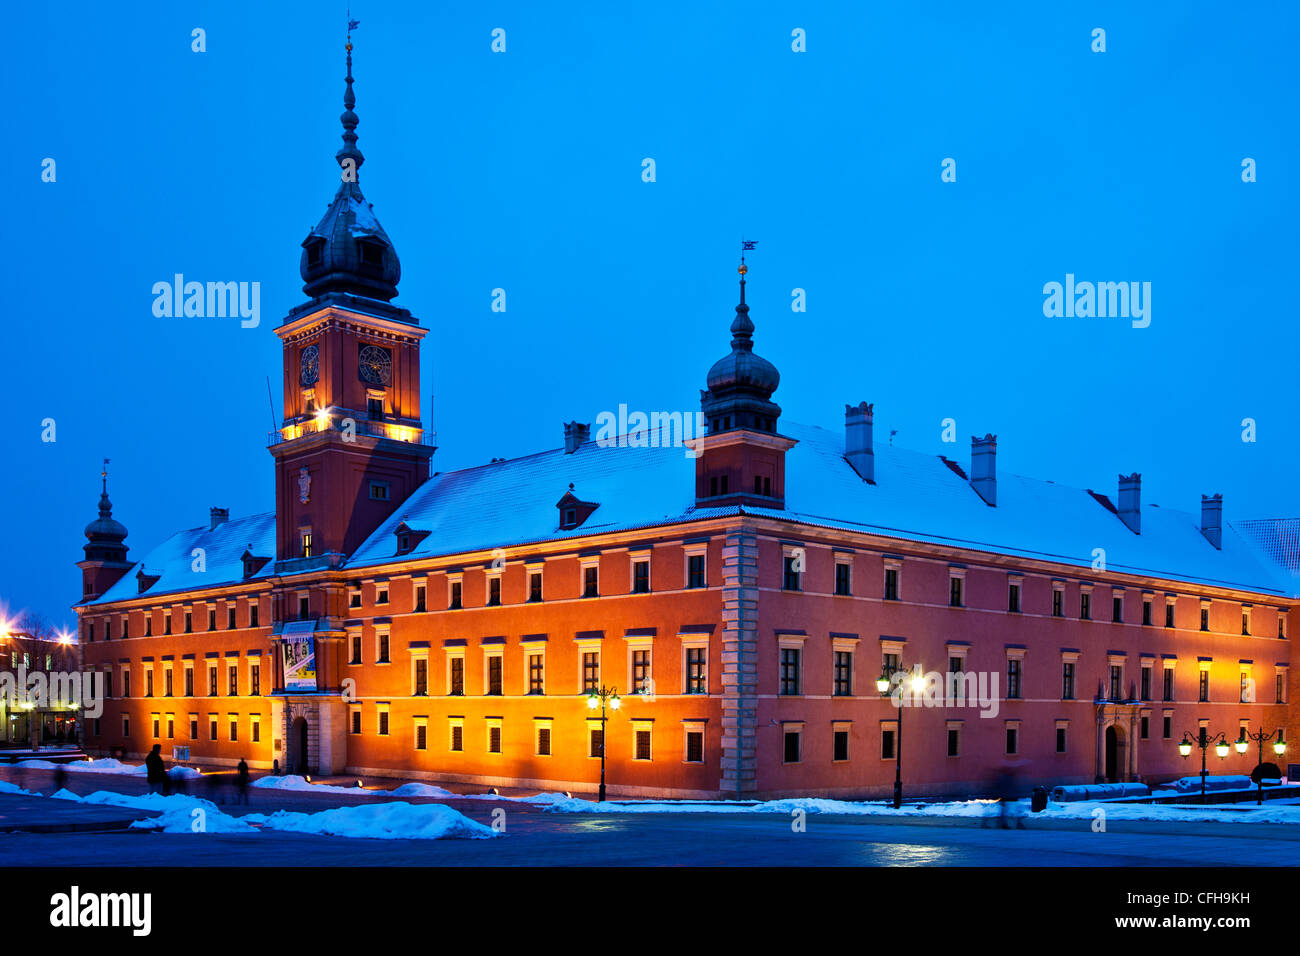 Winter twilight in Castle Square, Plac Zamkowy, Old Town, Warsaw, Poland, with the Royal Castle illuminated - Stock Image